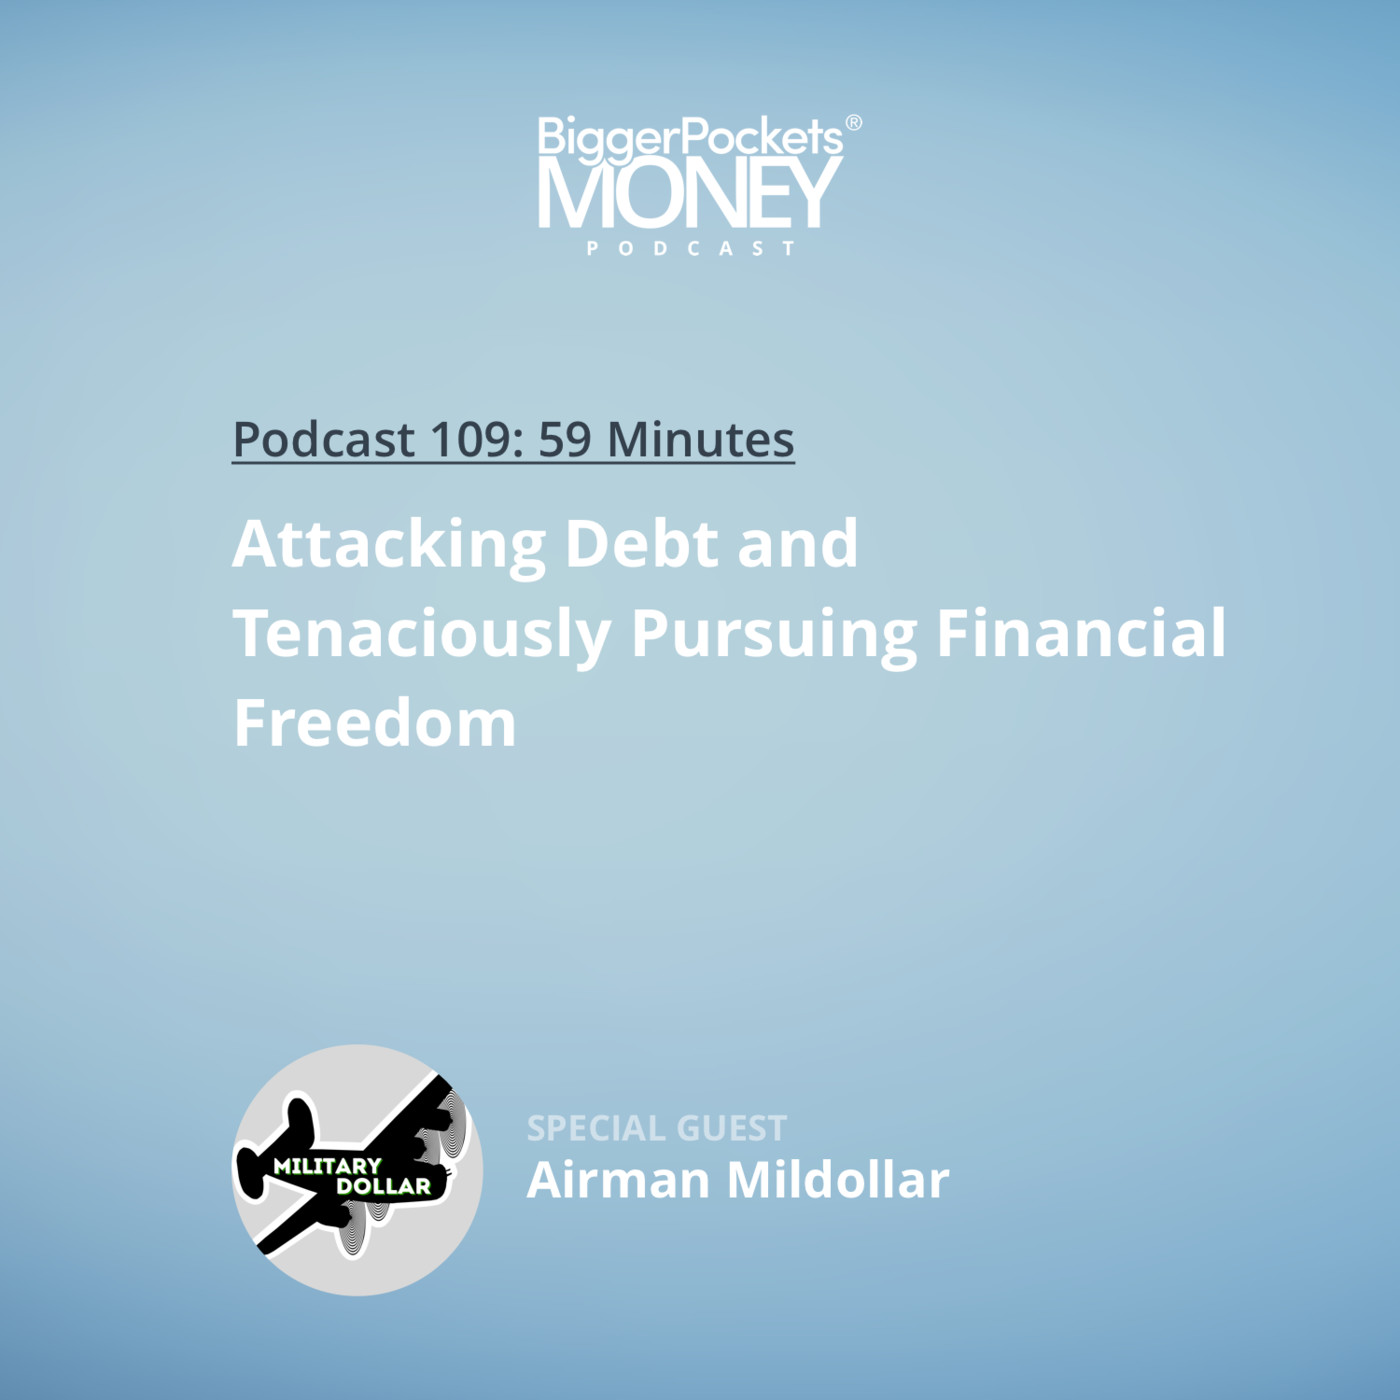 109: Attacking Debt and Tenaciously Pursuing Financial Freedom with Airman Mildollar from Military Dollar